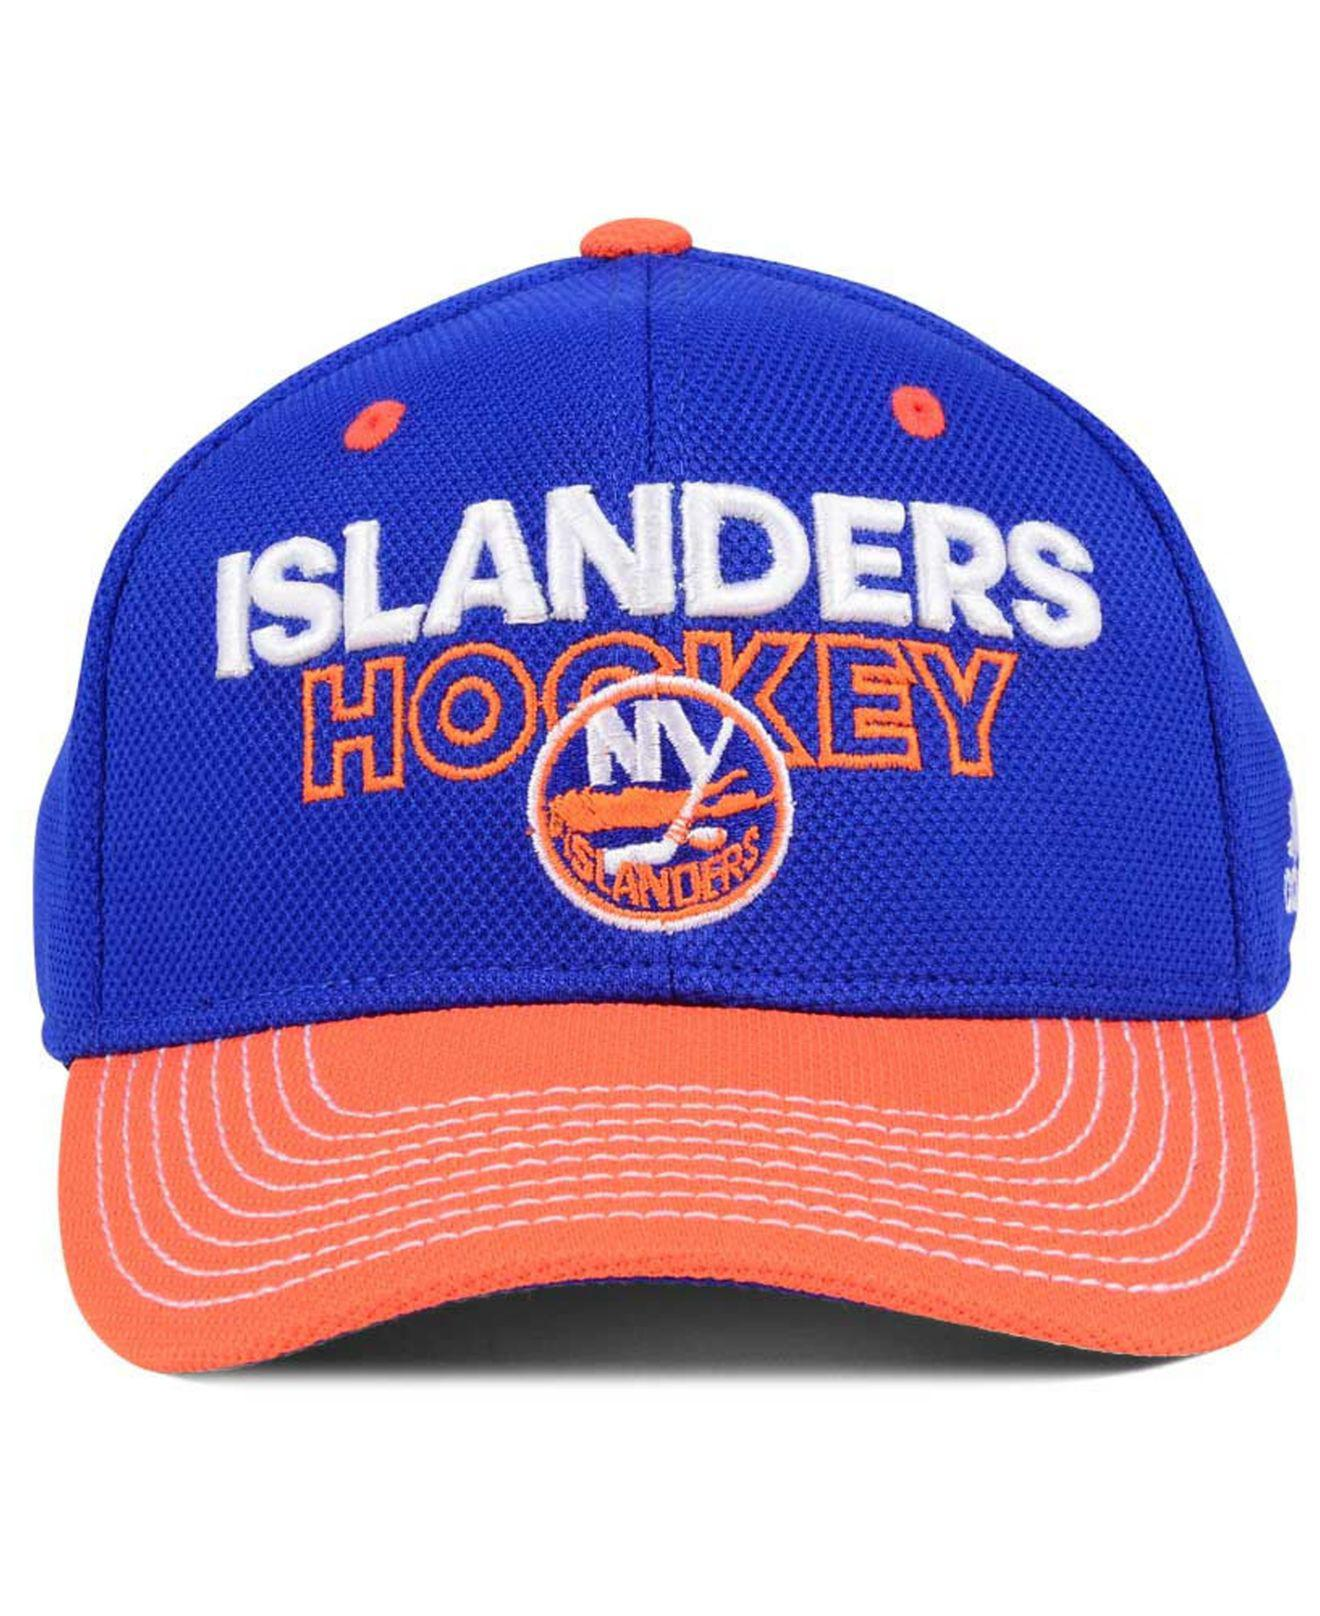 f09f7324 switzerland new york islanders adidas 2017 nhl draft structured flex cap  online outlet store d09b3 69818; clearance lyst adidas locker room structured  flex ...